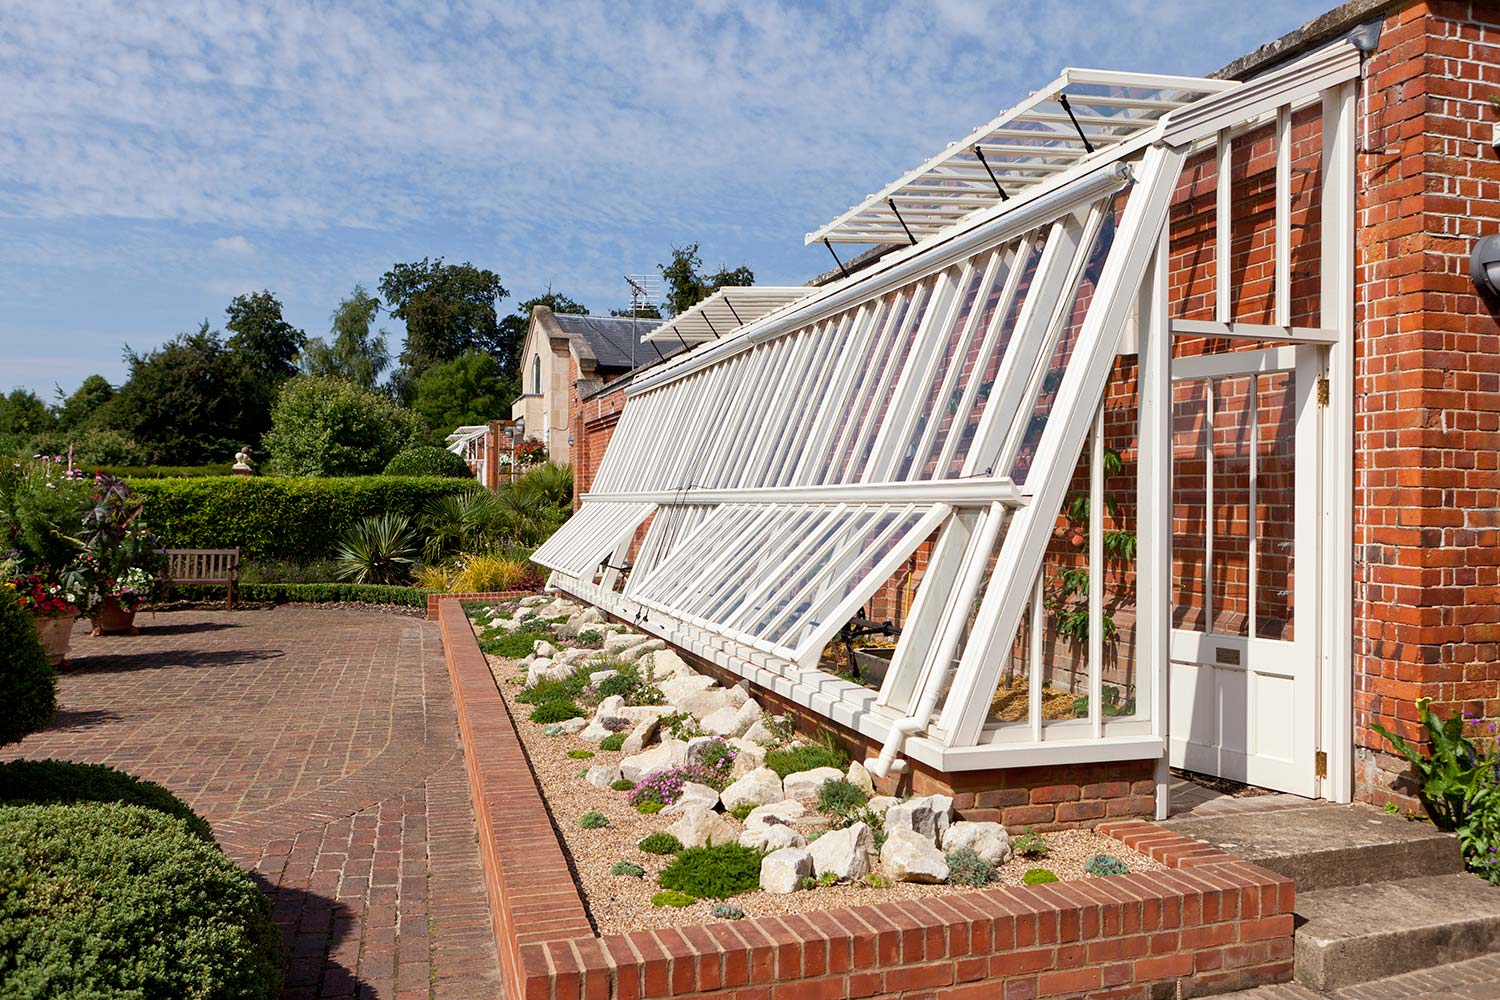 A monopitch lean-to greenhouse designed as a peach house with a sloping side in Off-white (Alitex)